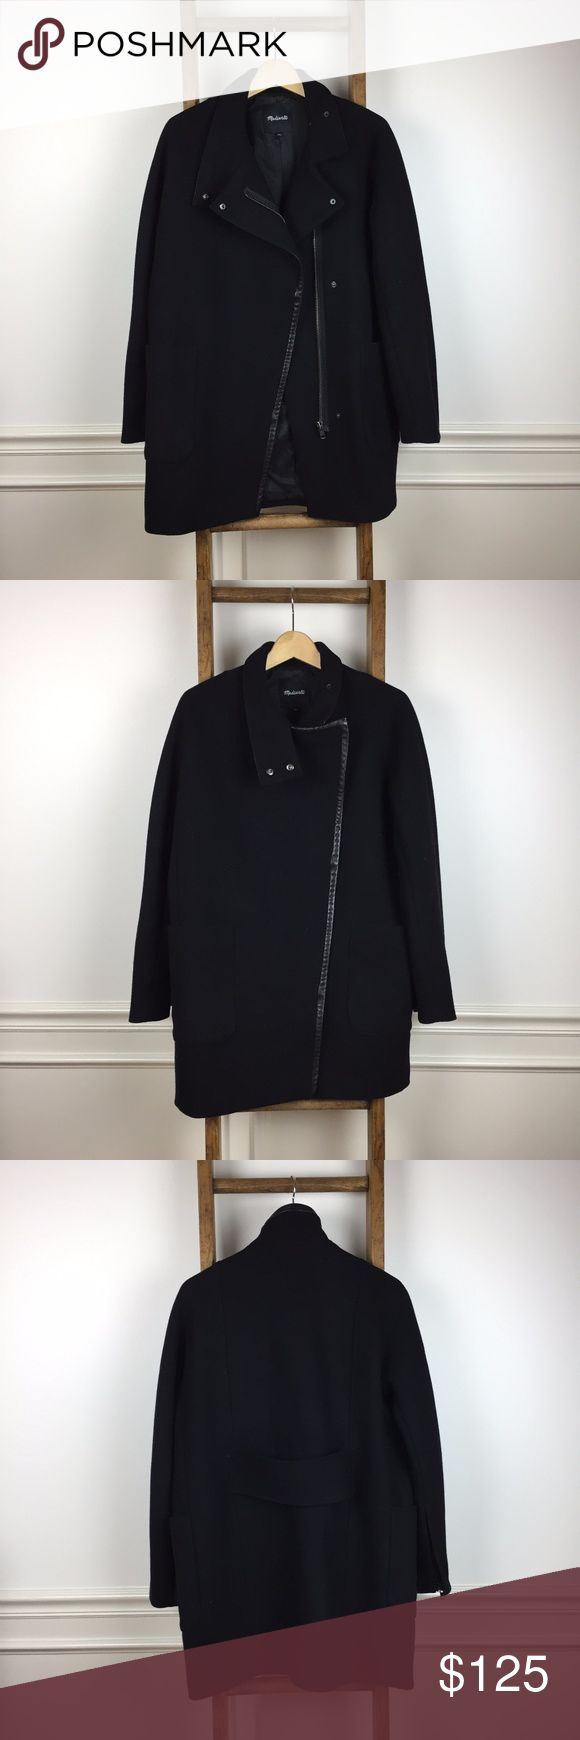 Madewell City Grid Coat Size 6